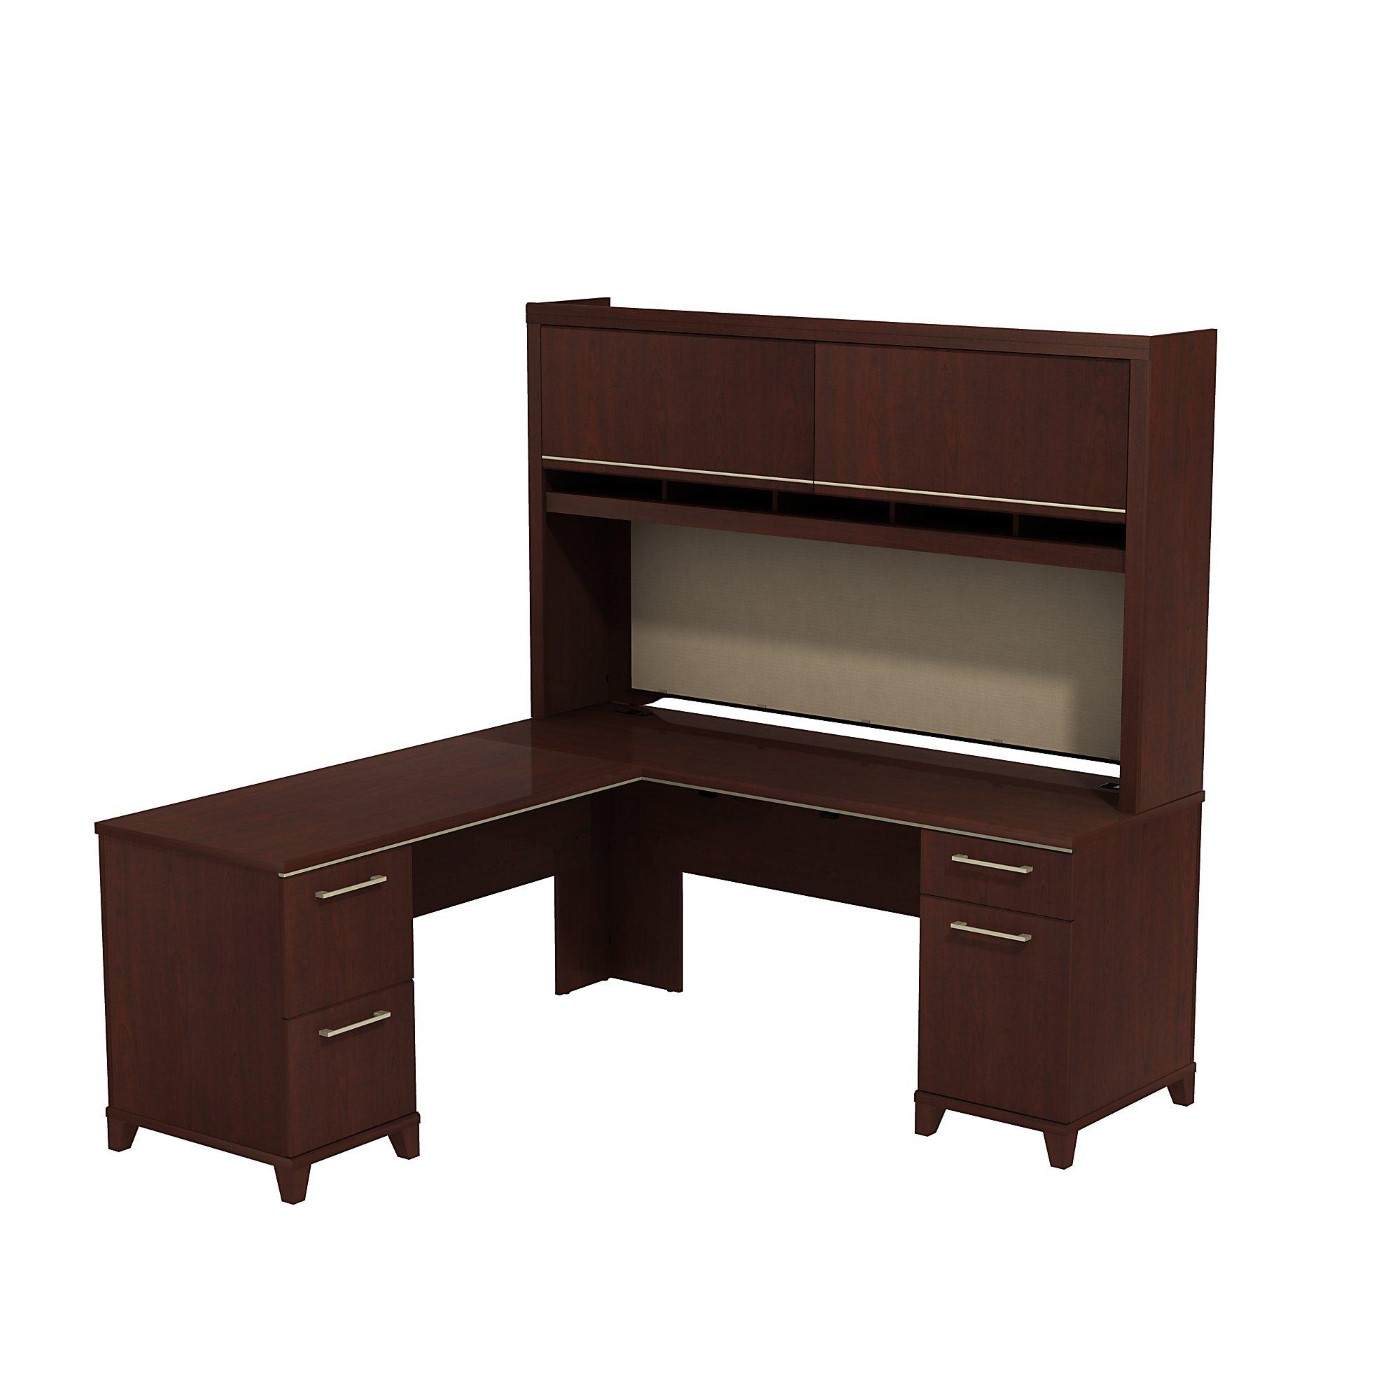 BUSH BUSINESS FURNITURE ENTERPRISE 72W X 72D L SHAPED DESK WITH HUTCH #EH-ENT008CS. FREE SHIPPING  VIDEO BELOW.